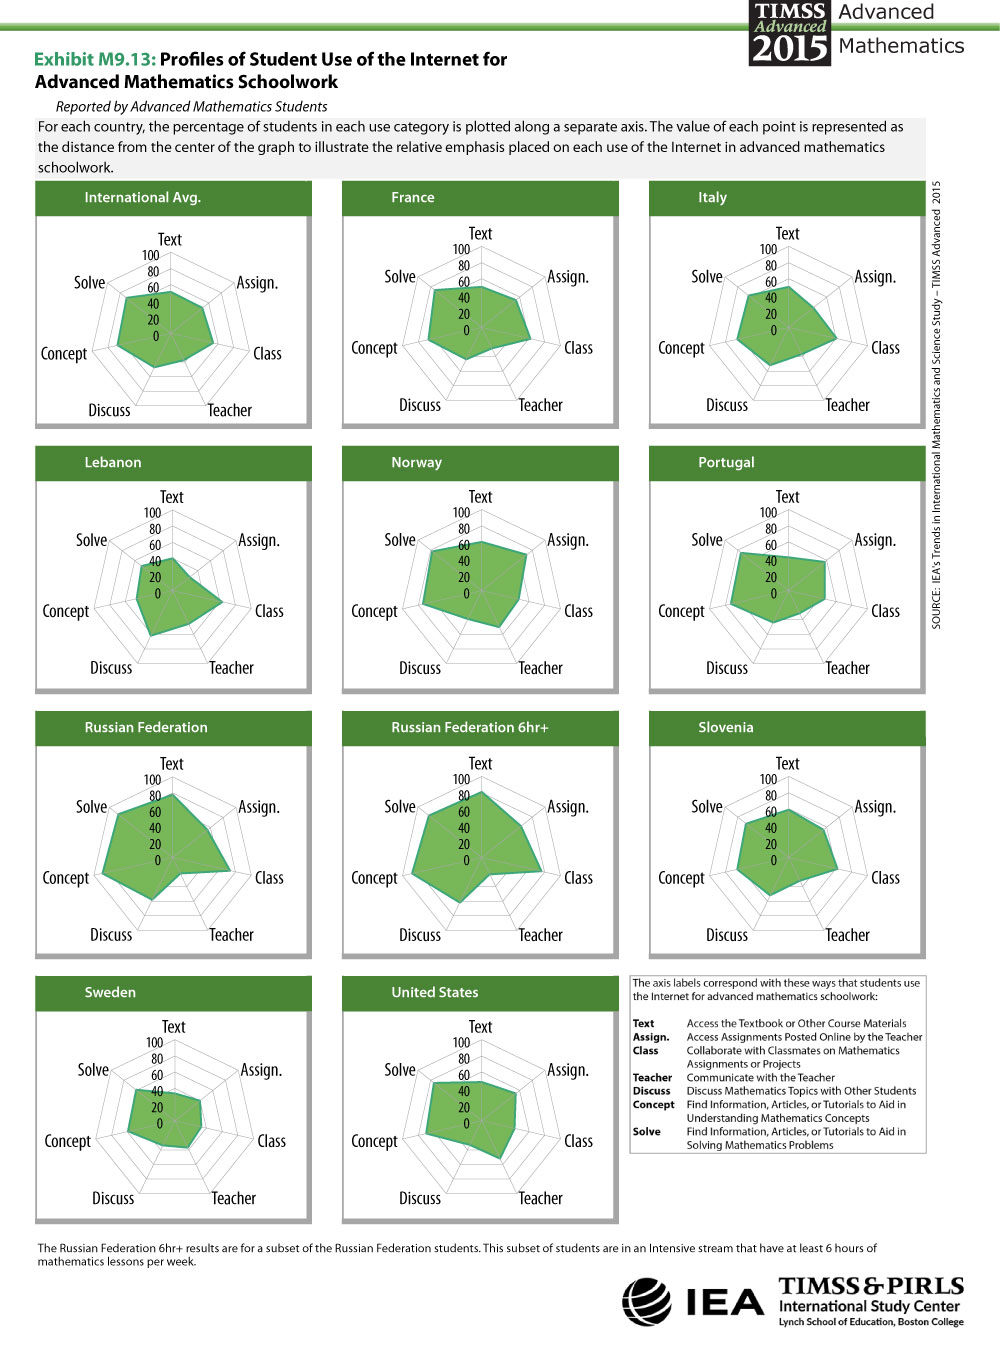 Profiles of Student Use of the Internet for Advanced Mathematics ...